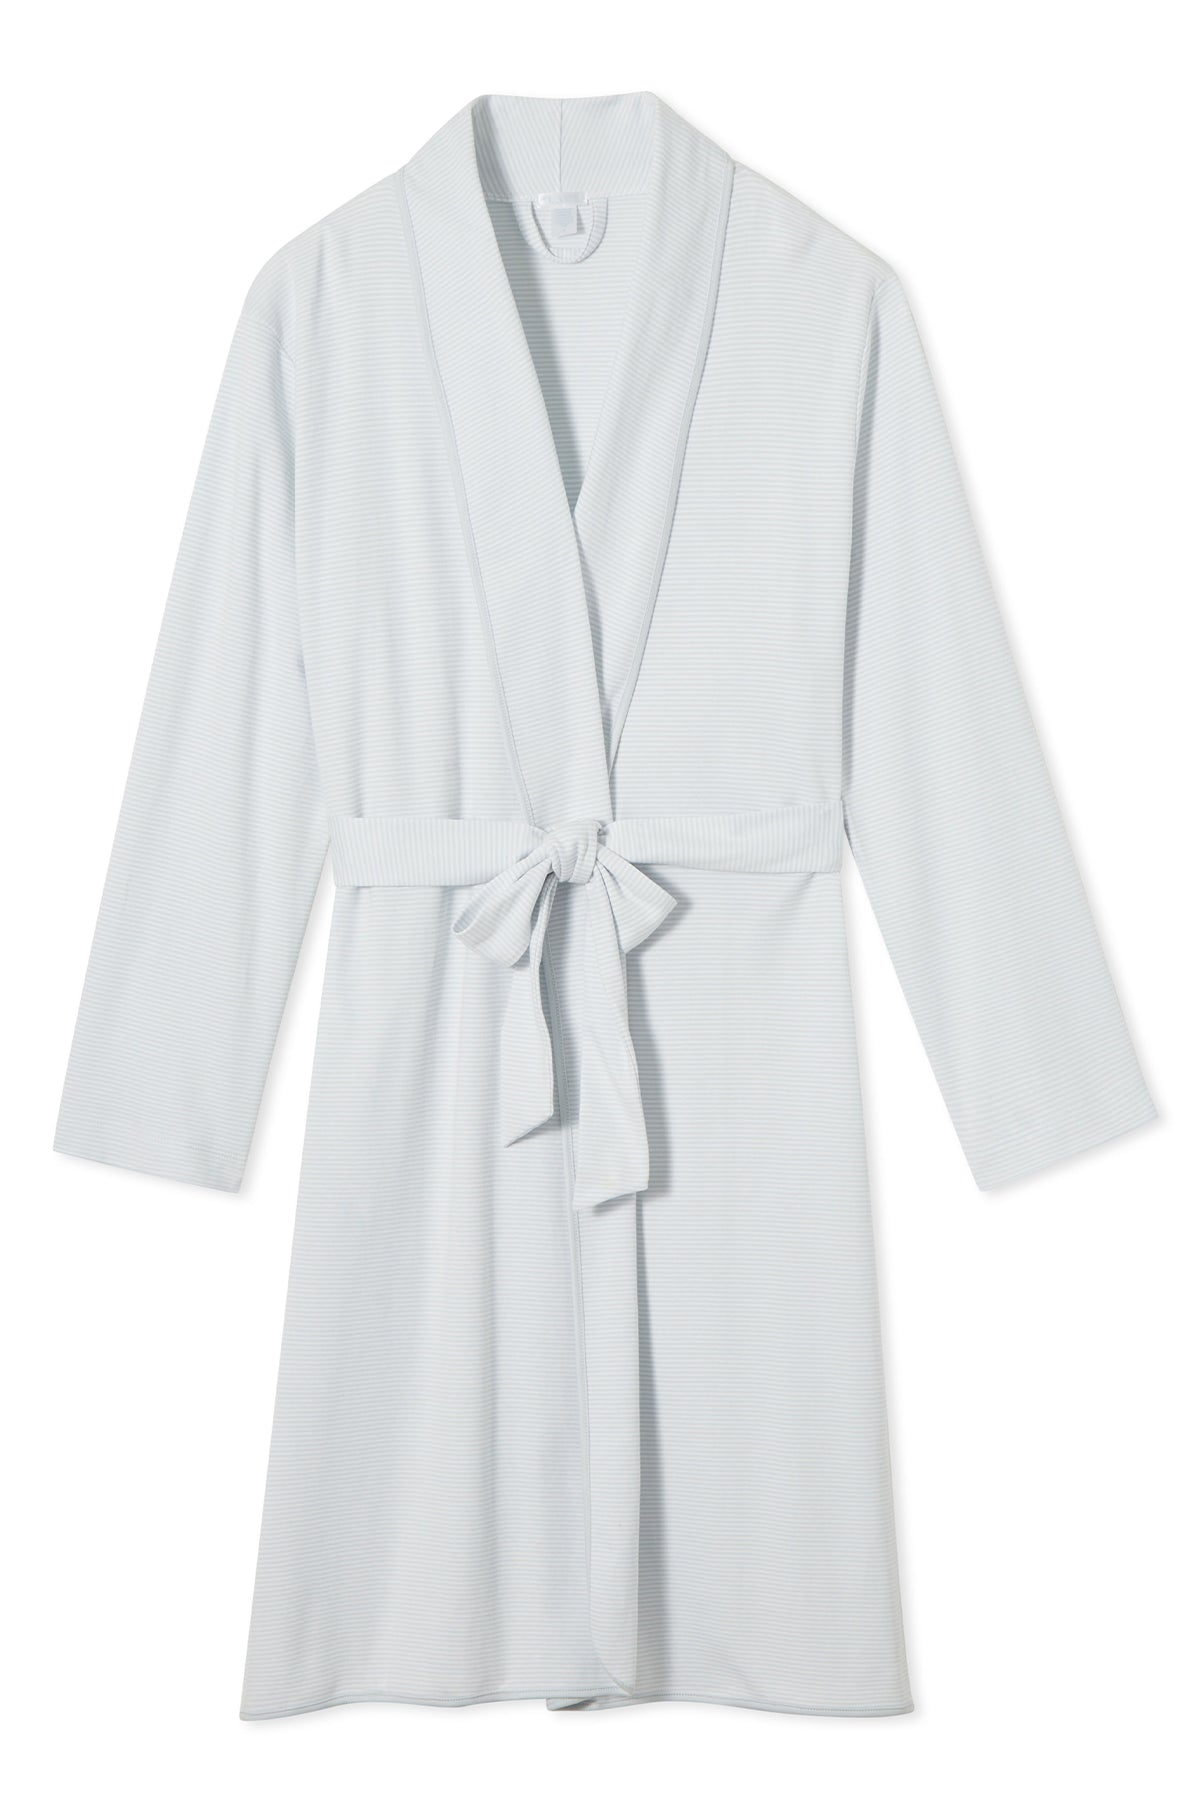 Pima Robe in Starry Stripe